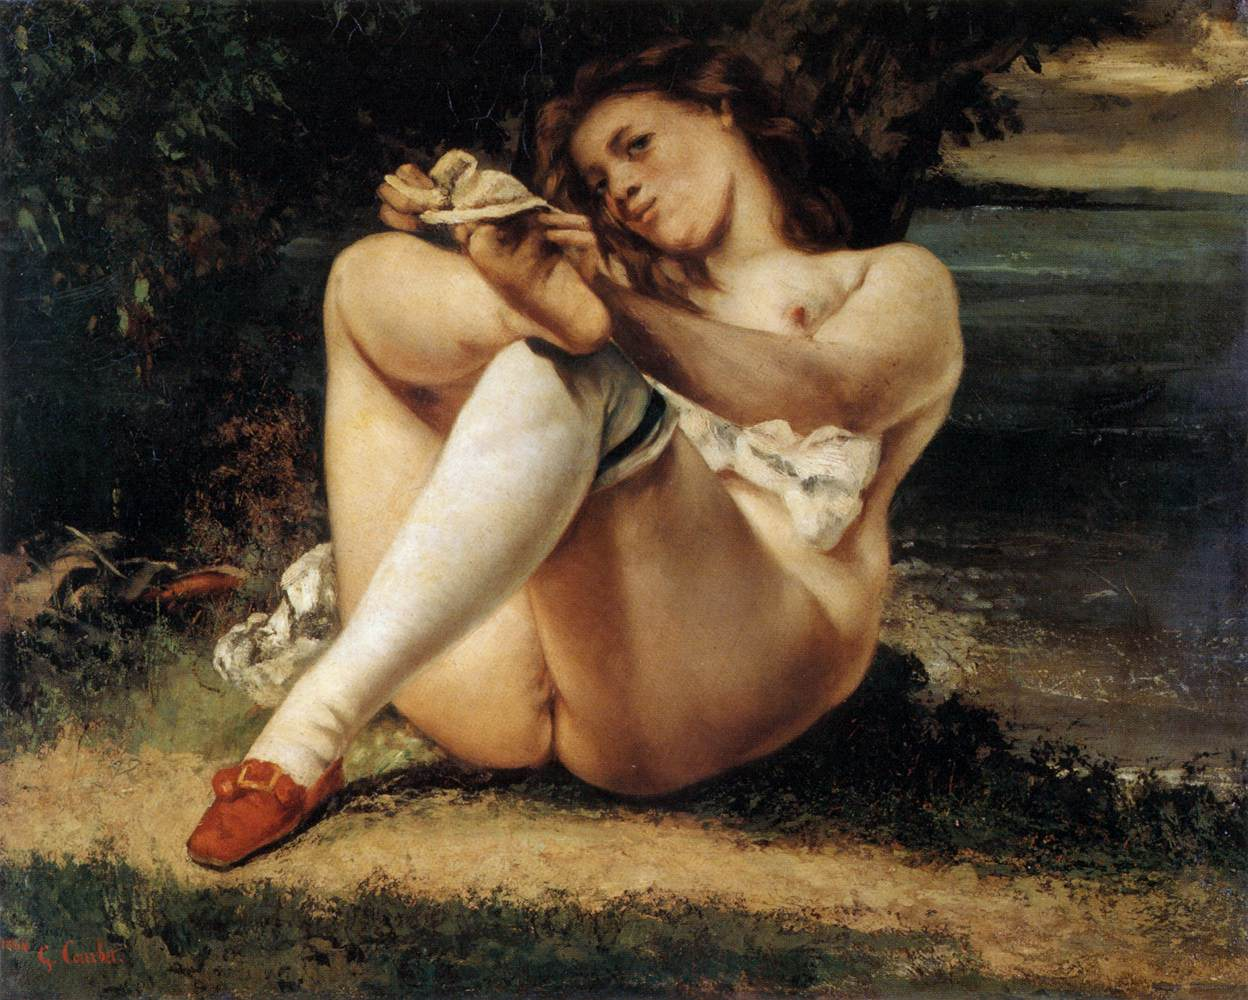 Gustave COURBET-1861